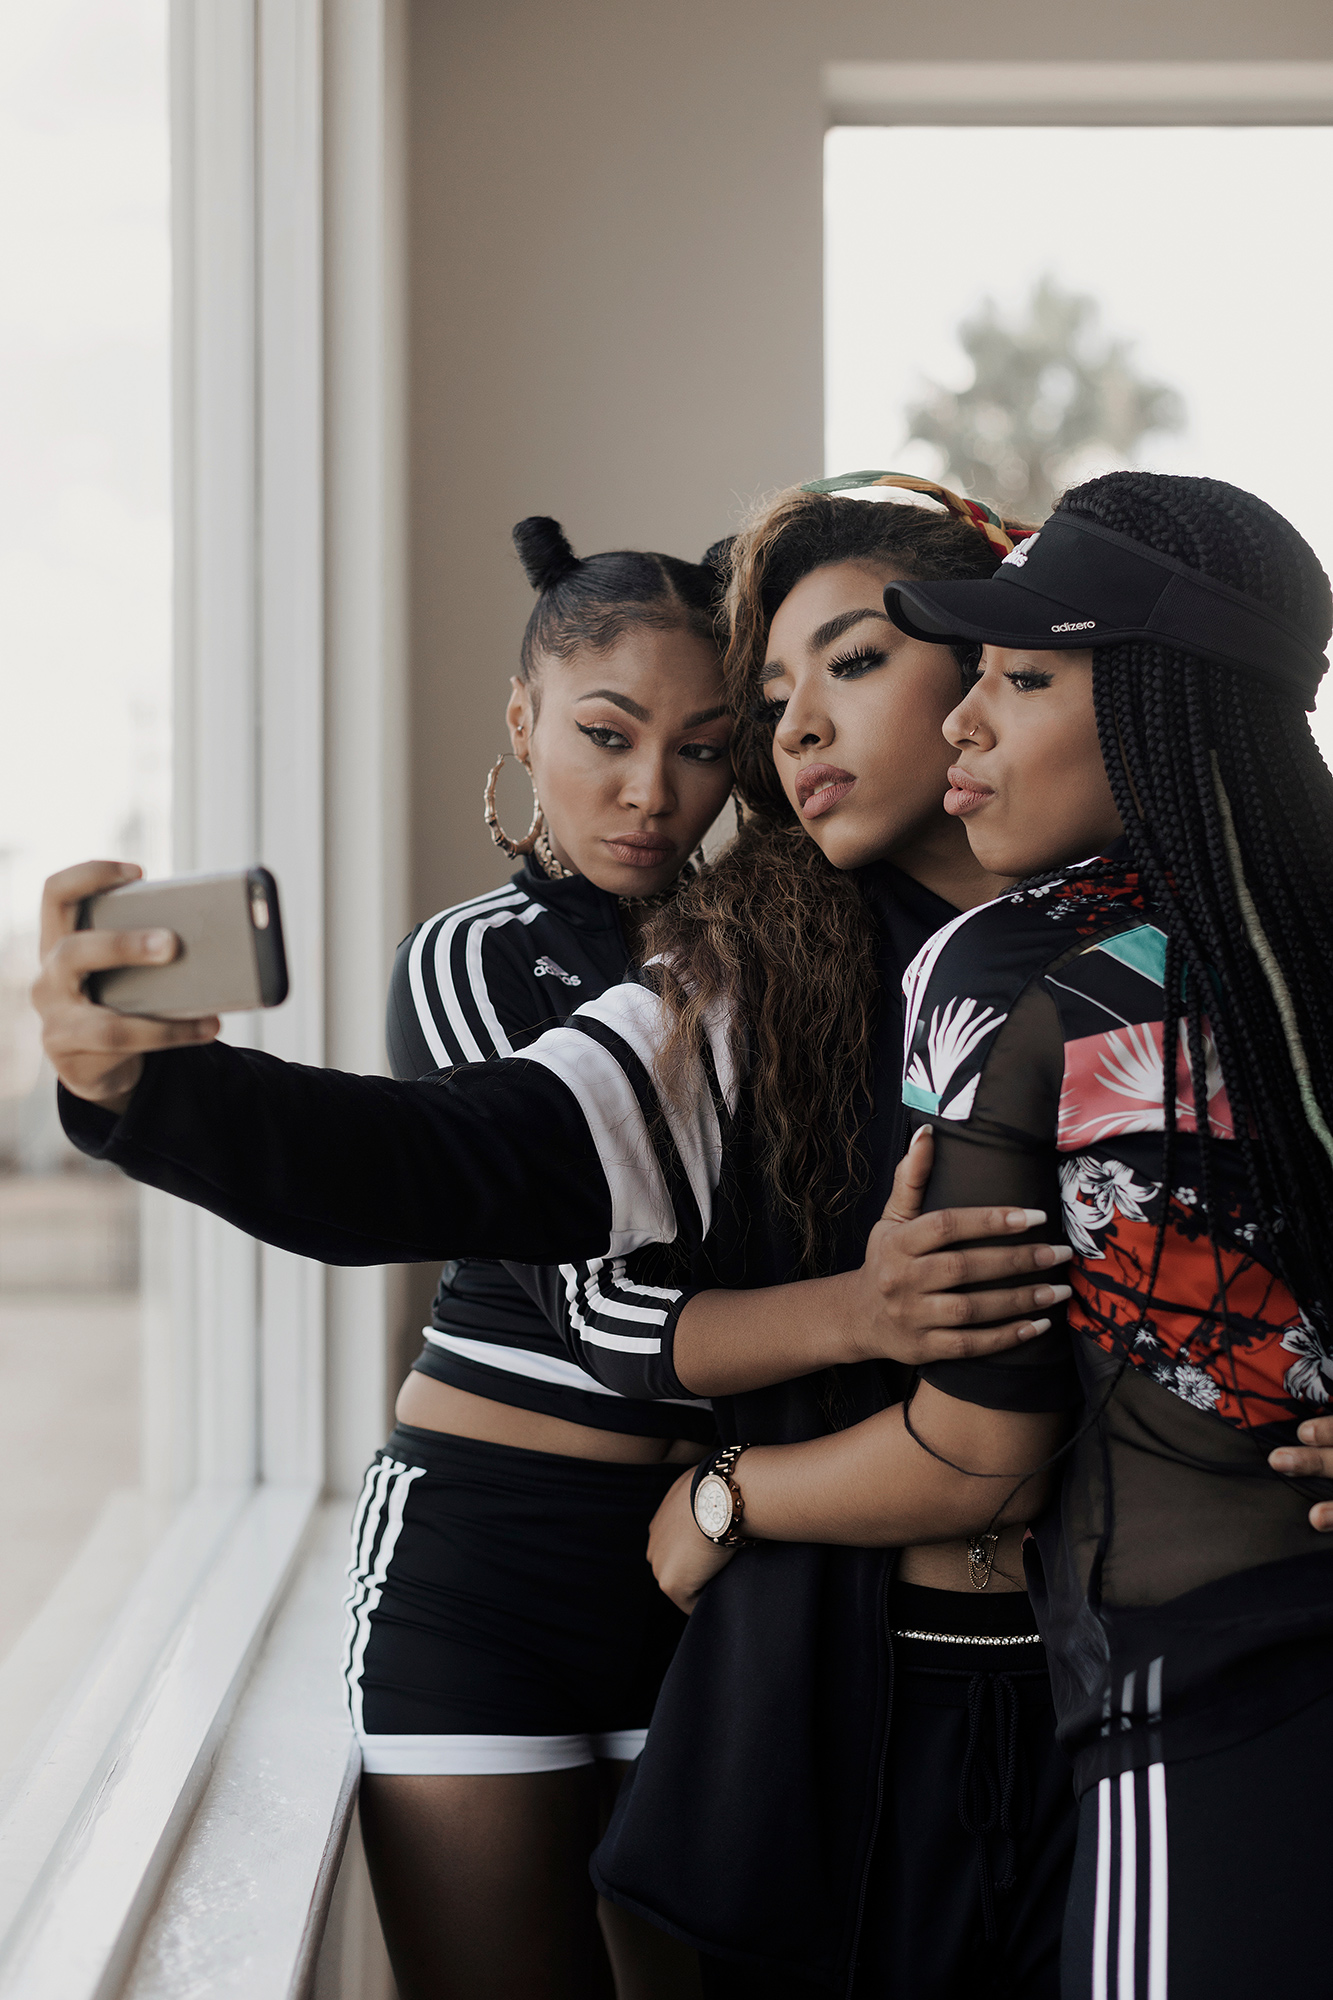 Blushhh Music, Music World Entertainment r&b and hip hop group, takes a selfie at the Music World Entertainment offices in midtown Houston, Texas, photographed by music photographer, Todd Spoth.